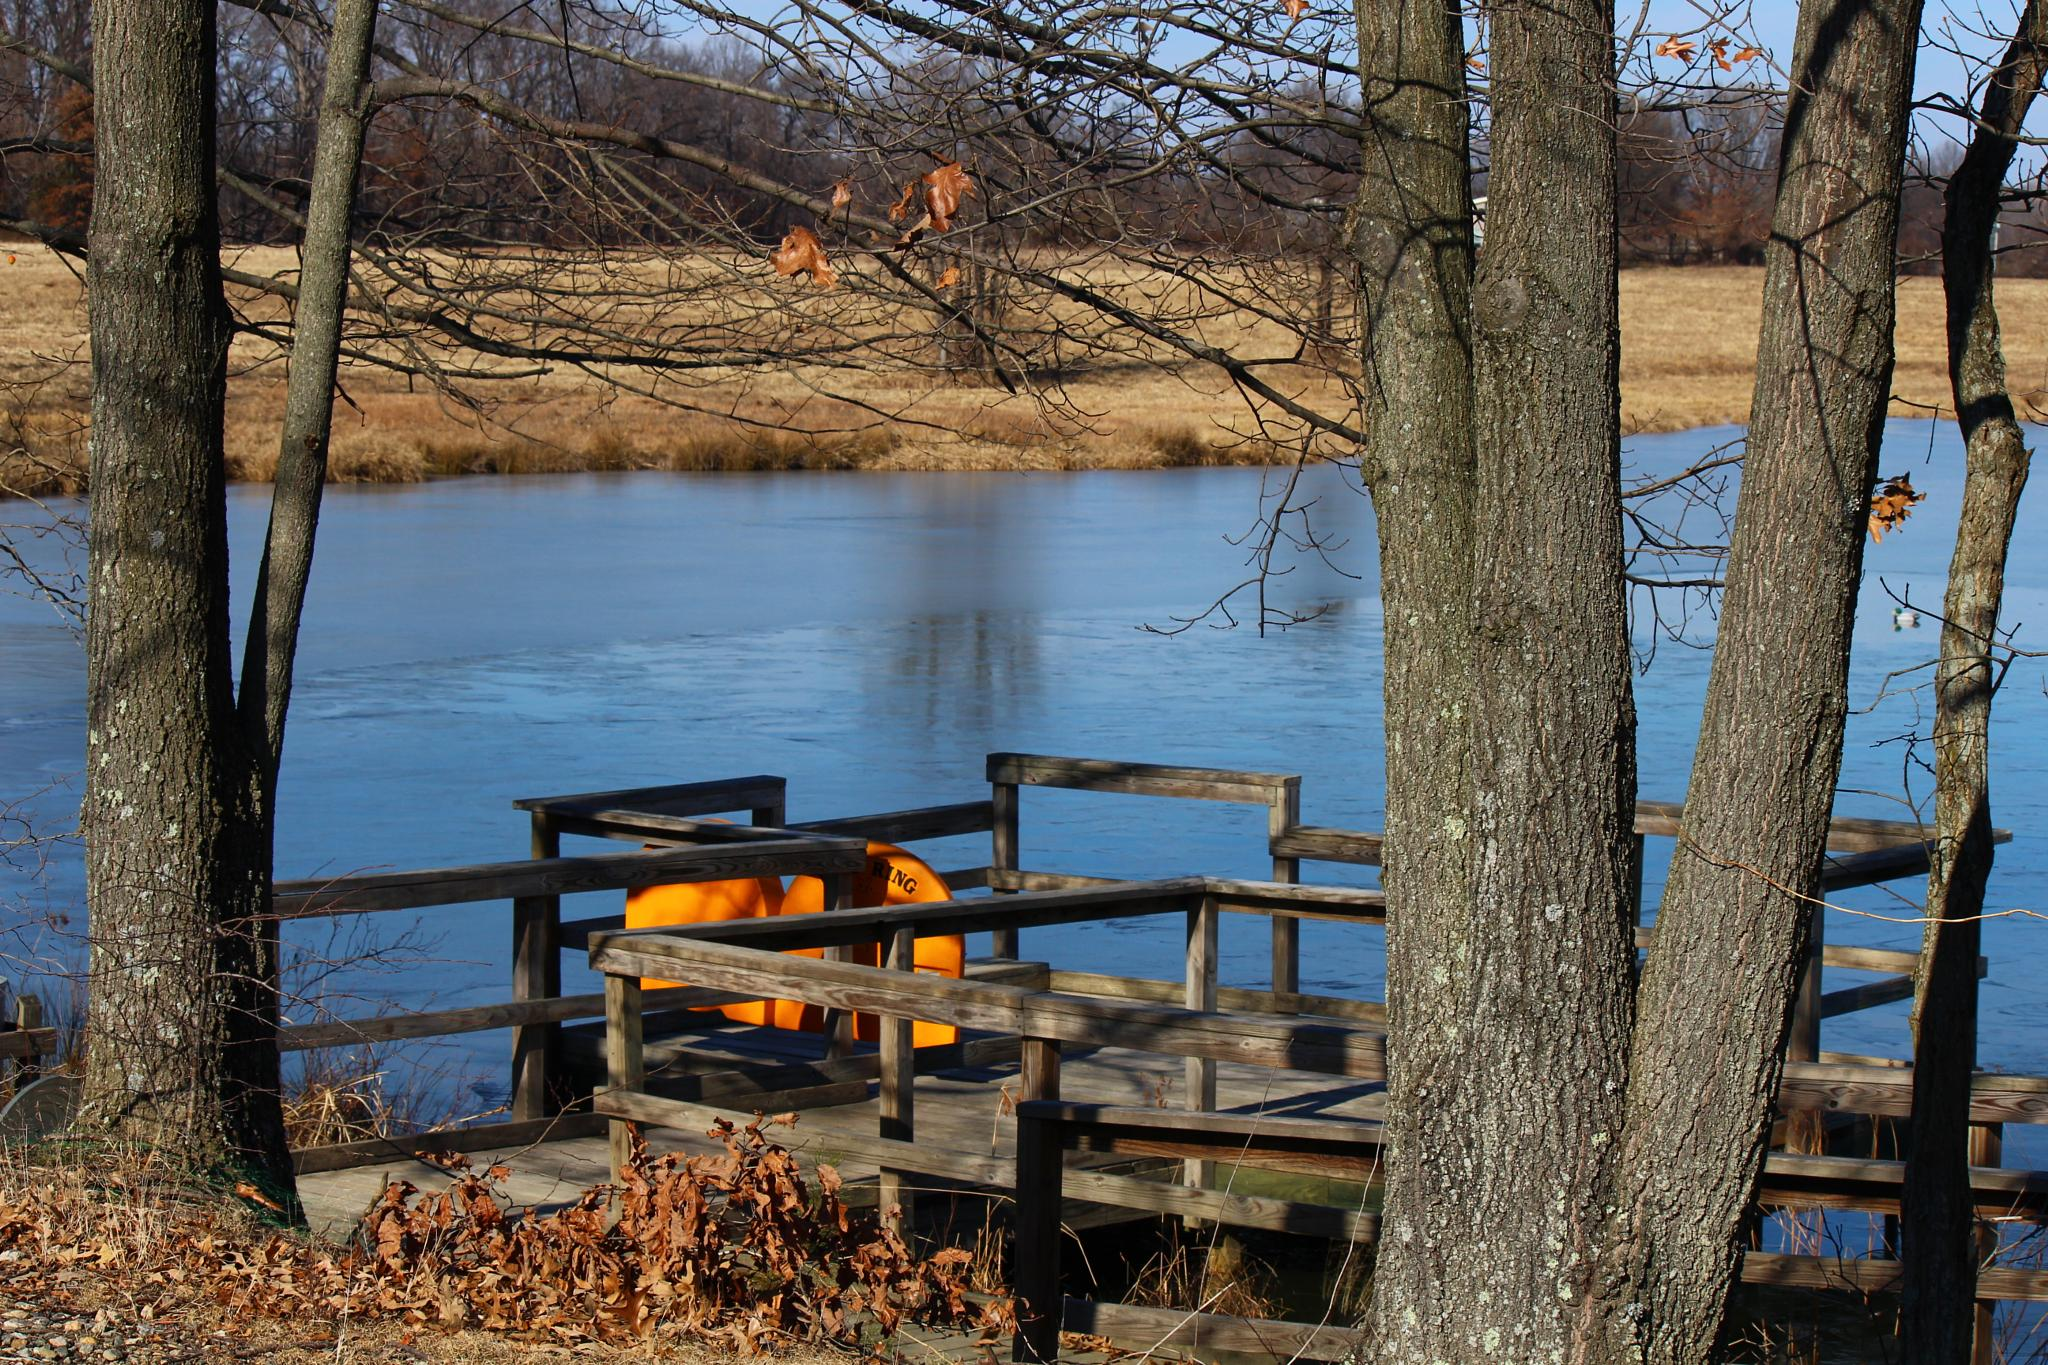 Frozen Pond on a Cold Day by Clark L. Roberts